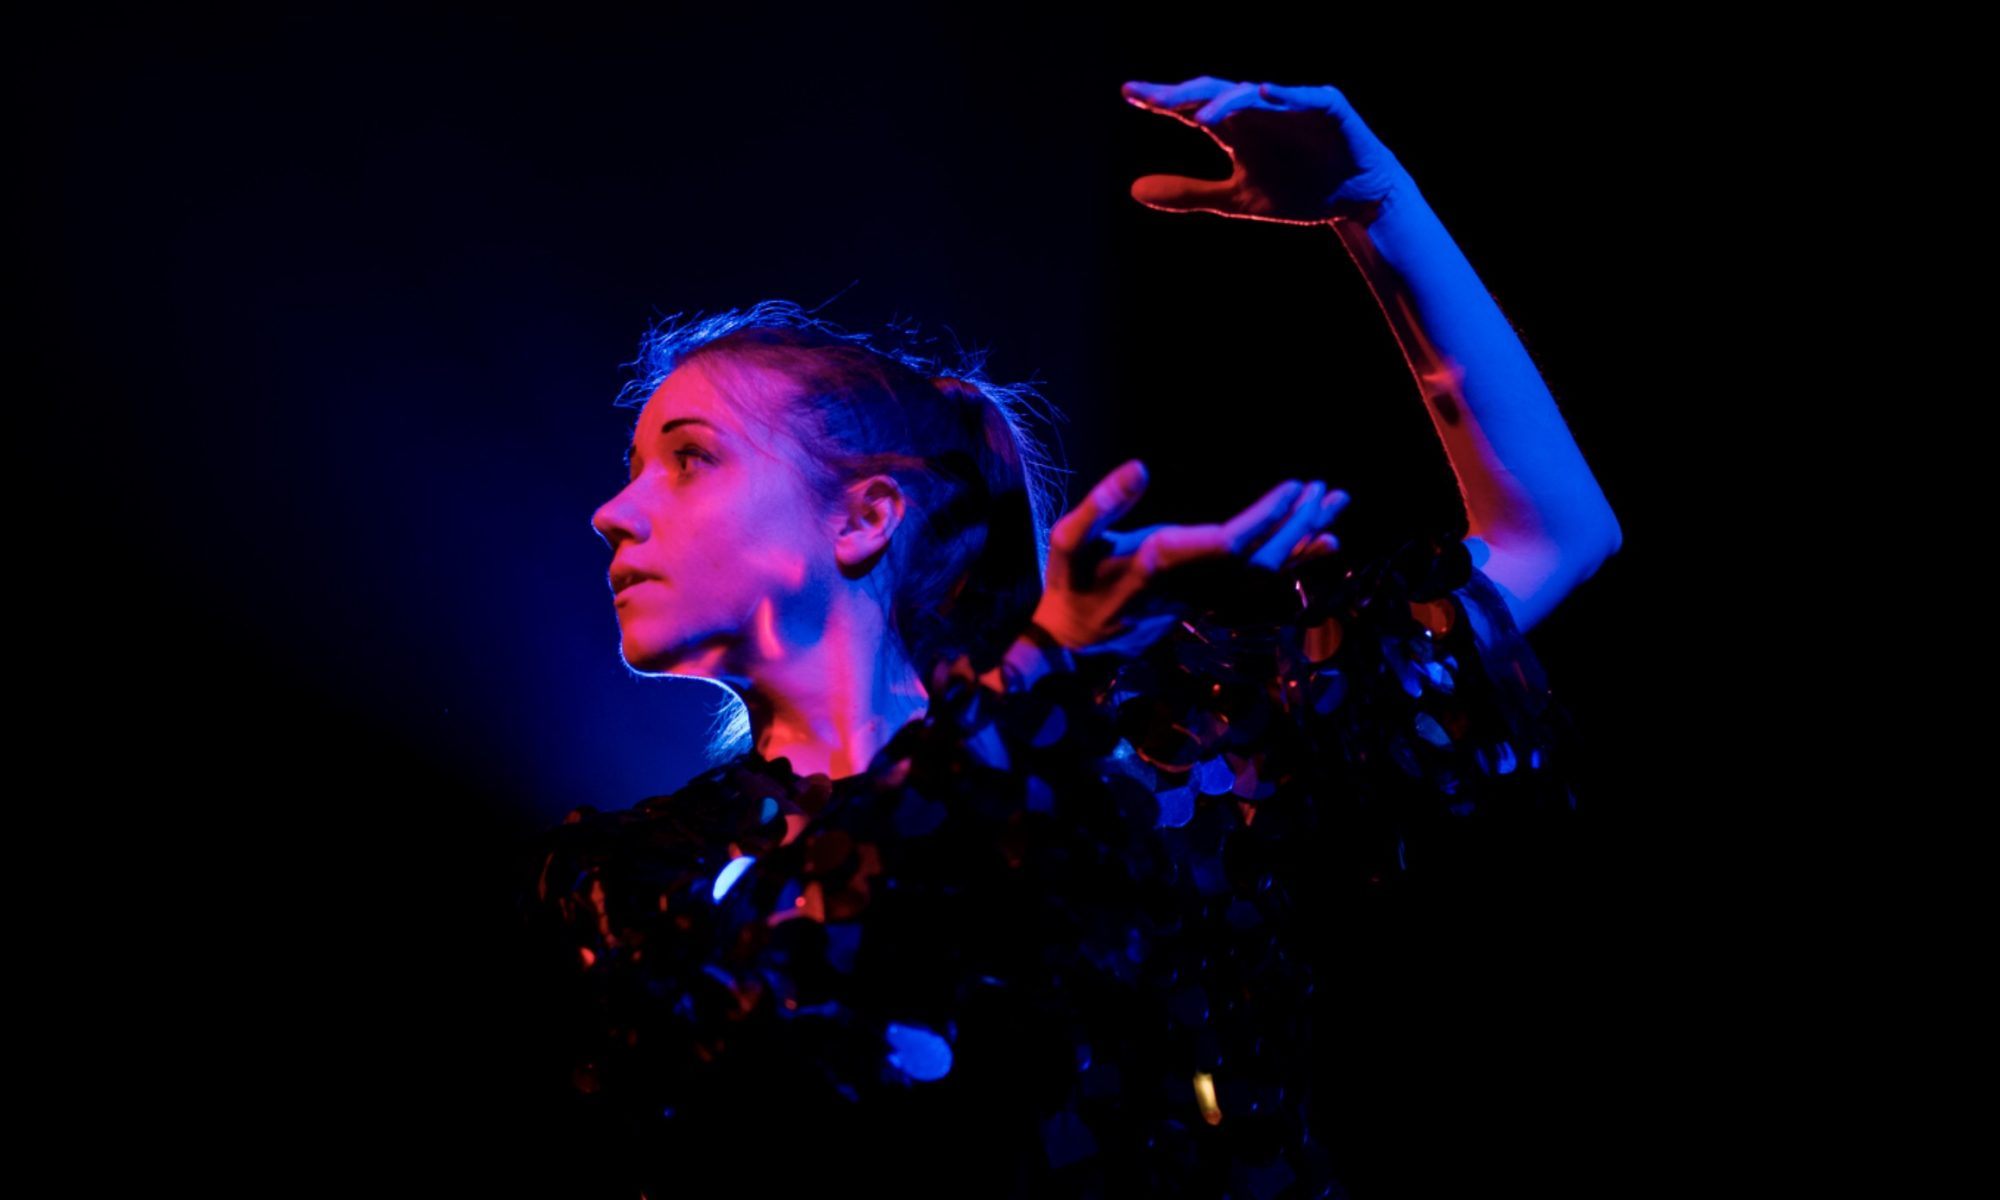 Jem Clancy dancing on stage. Her arm is up high behind her. She is lit by purple, pink and blue lighting.